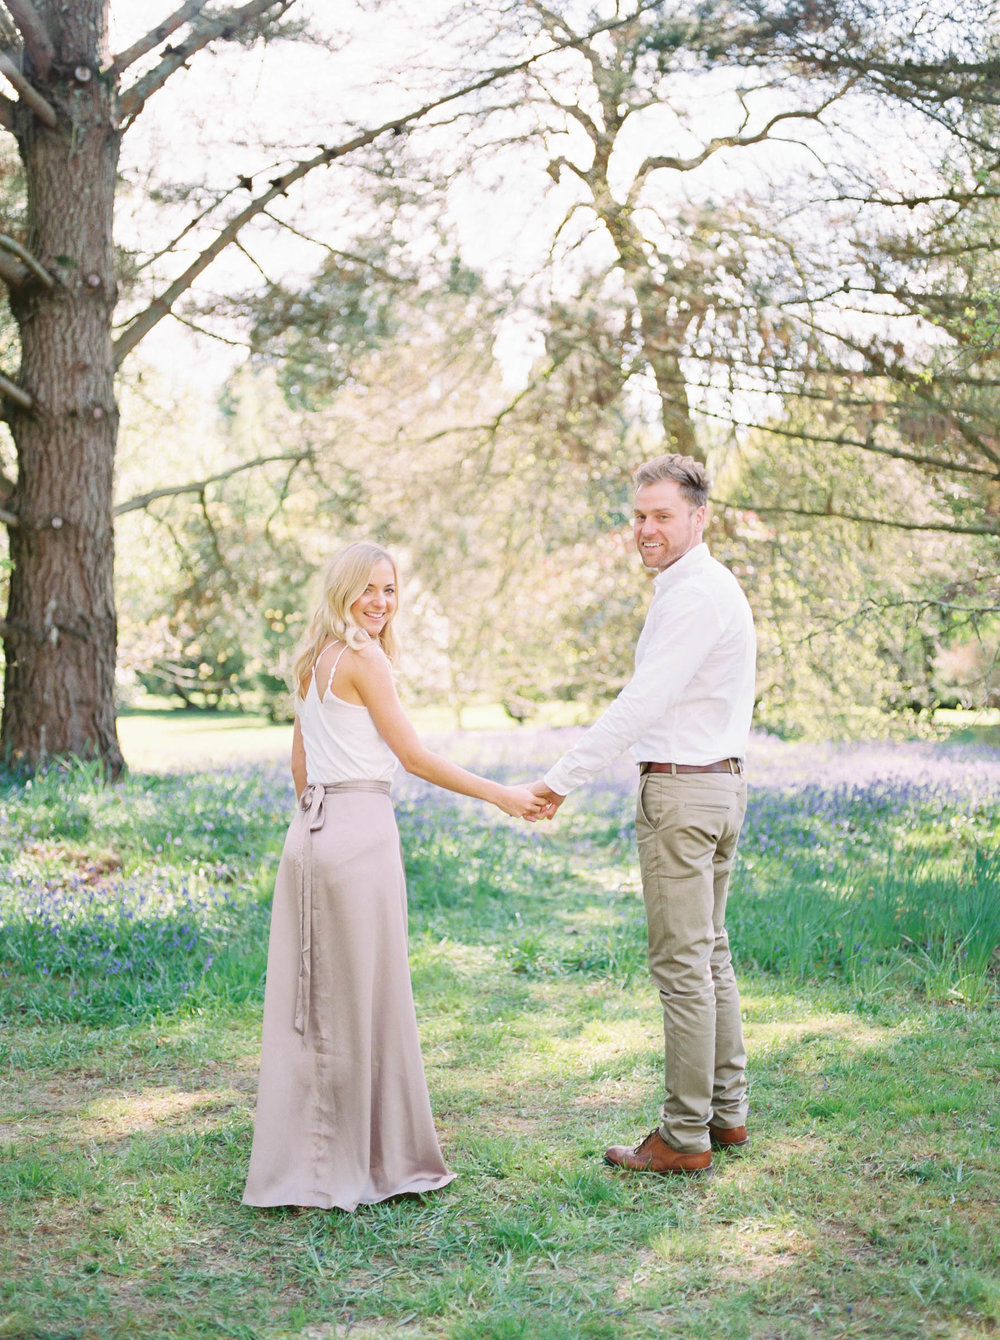 Amy O'Boyle Photography- Destination & UK Fine Art Film Wedding Photographer- Sheffield Park Garden National Trust Spring Engagement Shoot-3.jpg